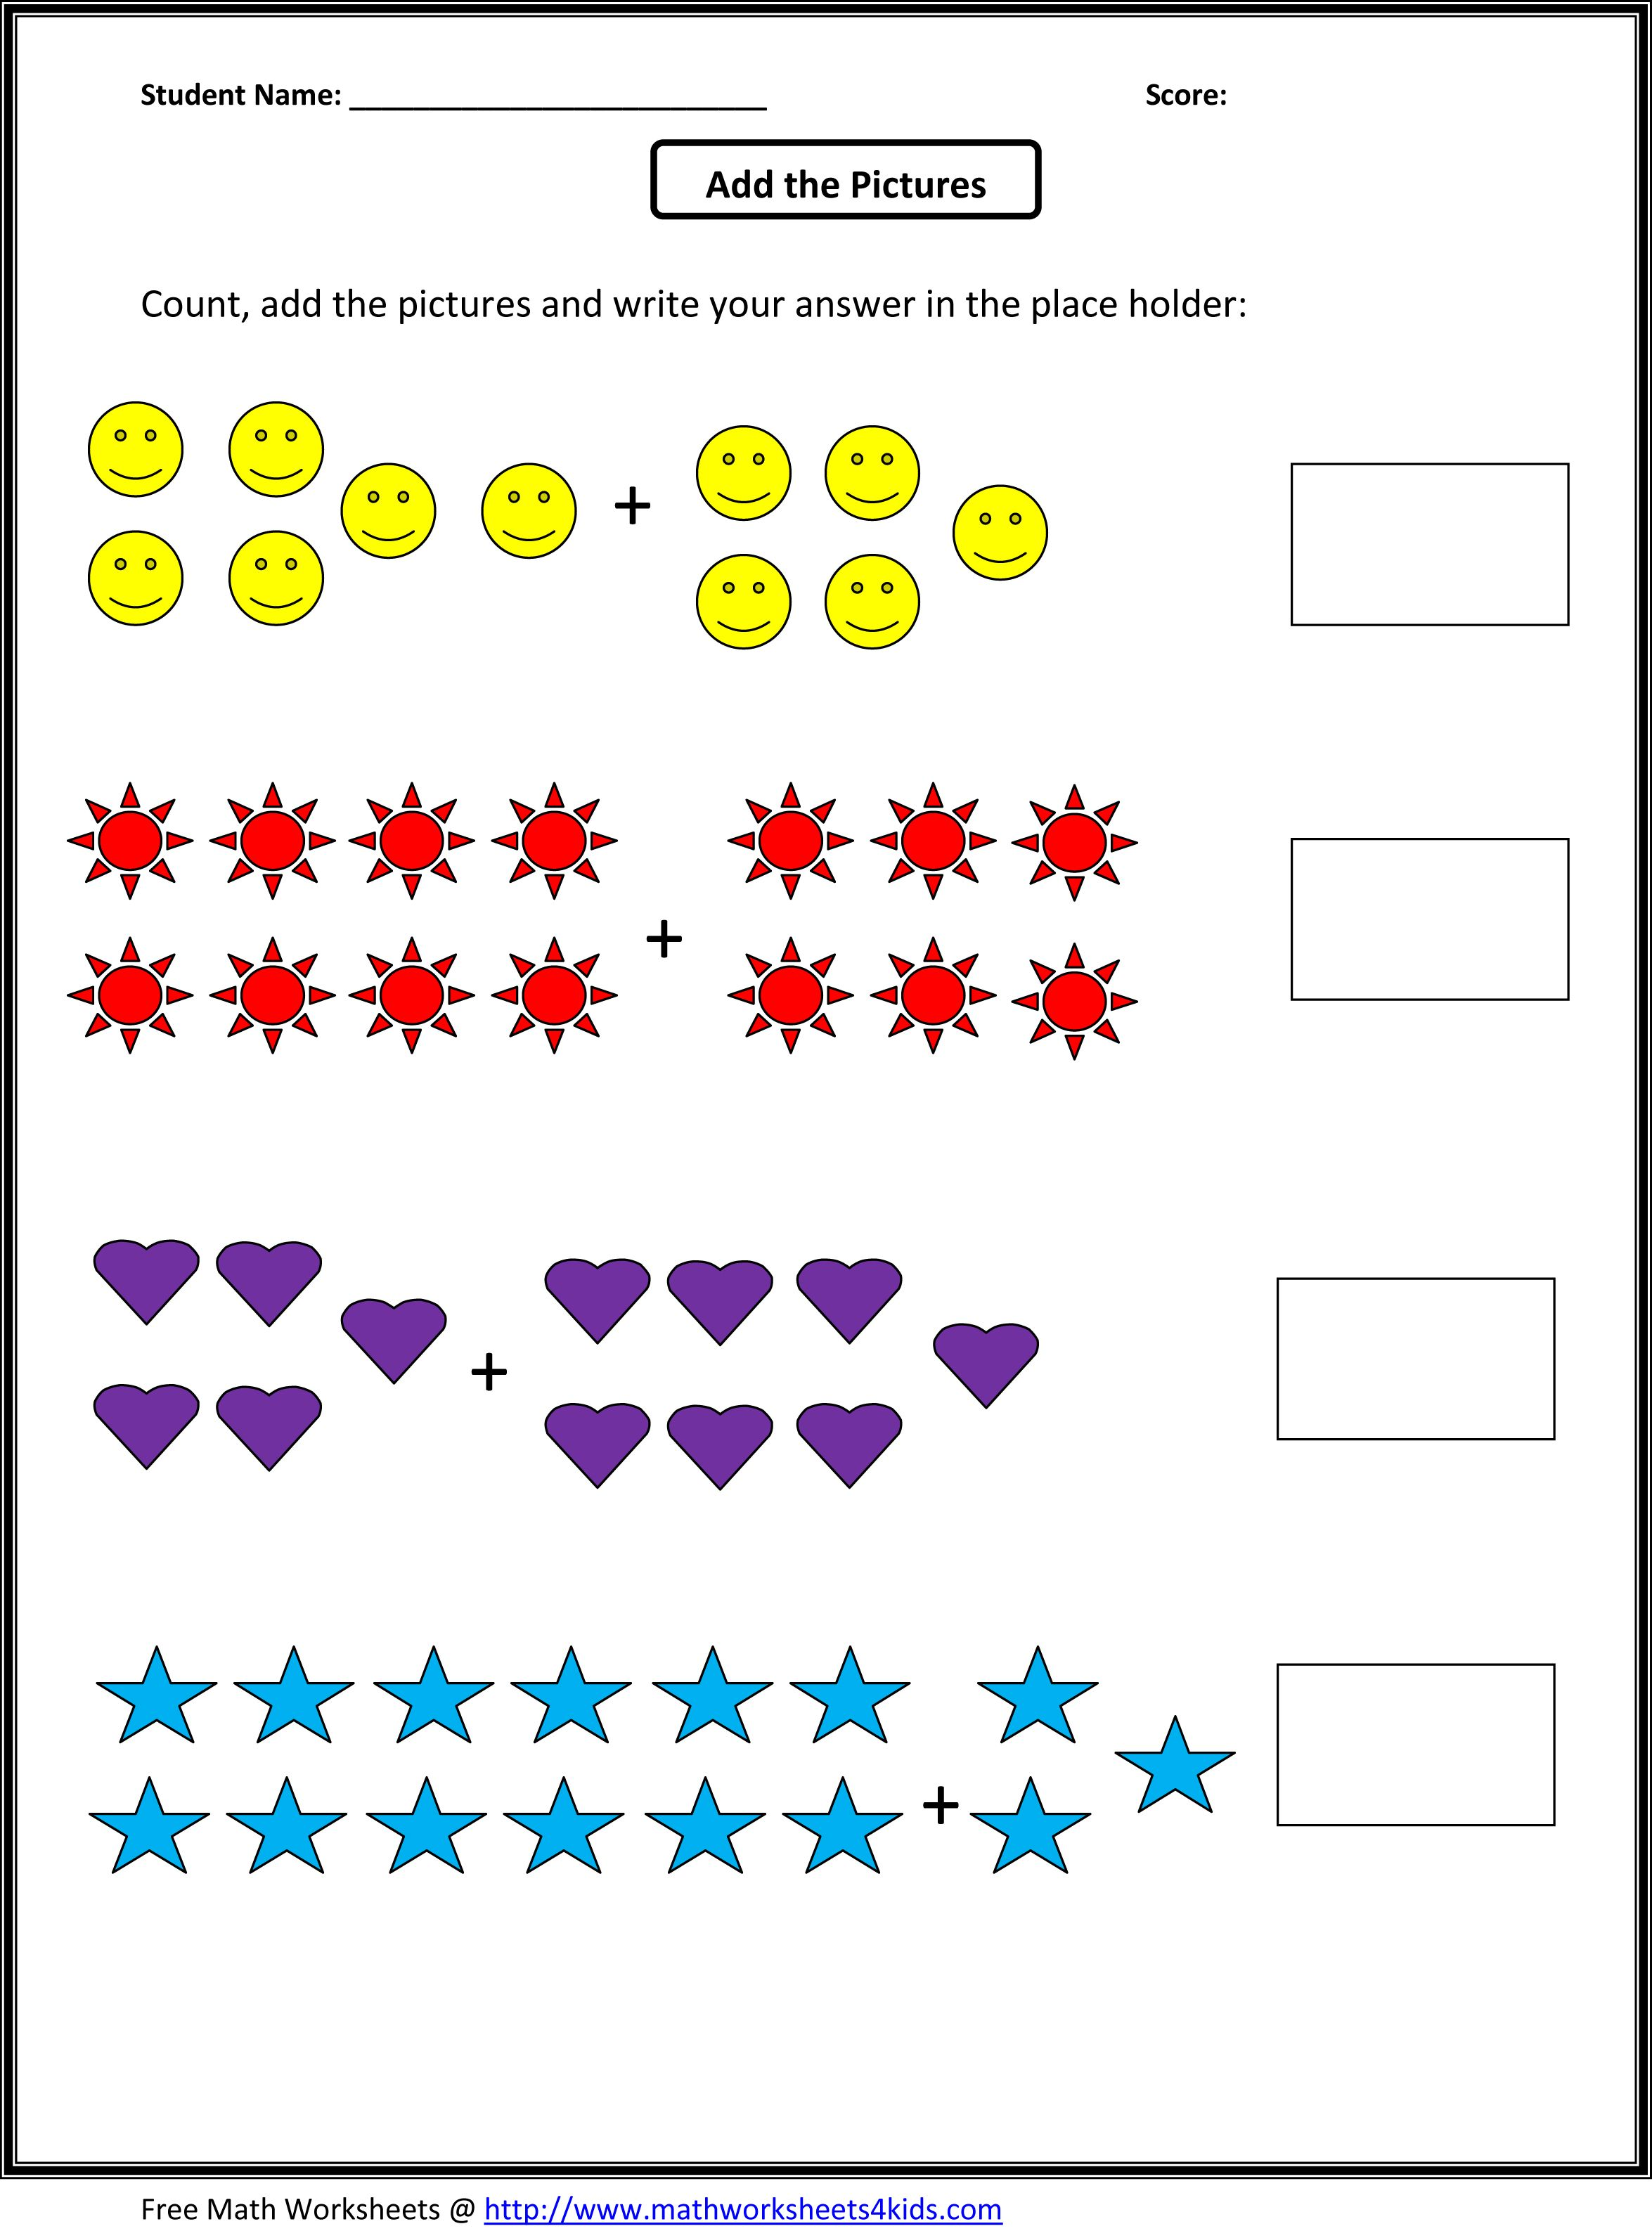 Aldiablosus  Terrific Worksheet For Math Grade   Coffemix With Lovable  Images About School On Pinterest  Mental Maths Worksheets  With Easy On The Eye Kindergarten Writing Numbers Worksheets Also Kg Worksheets In Addition Number Sequences Worksheets And Worksheet For Algebraic Expressions As Well As Fafsa Practice Worksheet Additionally Pie Chart Problems Worksheets From Coffemixcom With Aldiablosus  Lovable Worksheet For Math Grade   Coffemix With Easy On The Eye  Images About School On Pinterest  Mental Maths Worksheets  And Terrific Kindergarten Writing Numbers Worksheets Also Kg Worksheets In Addition Number Sequences Worksheets From Coffemixcom